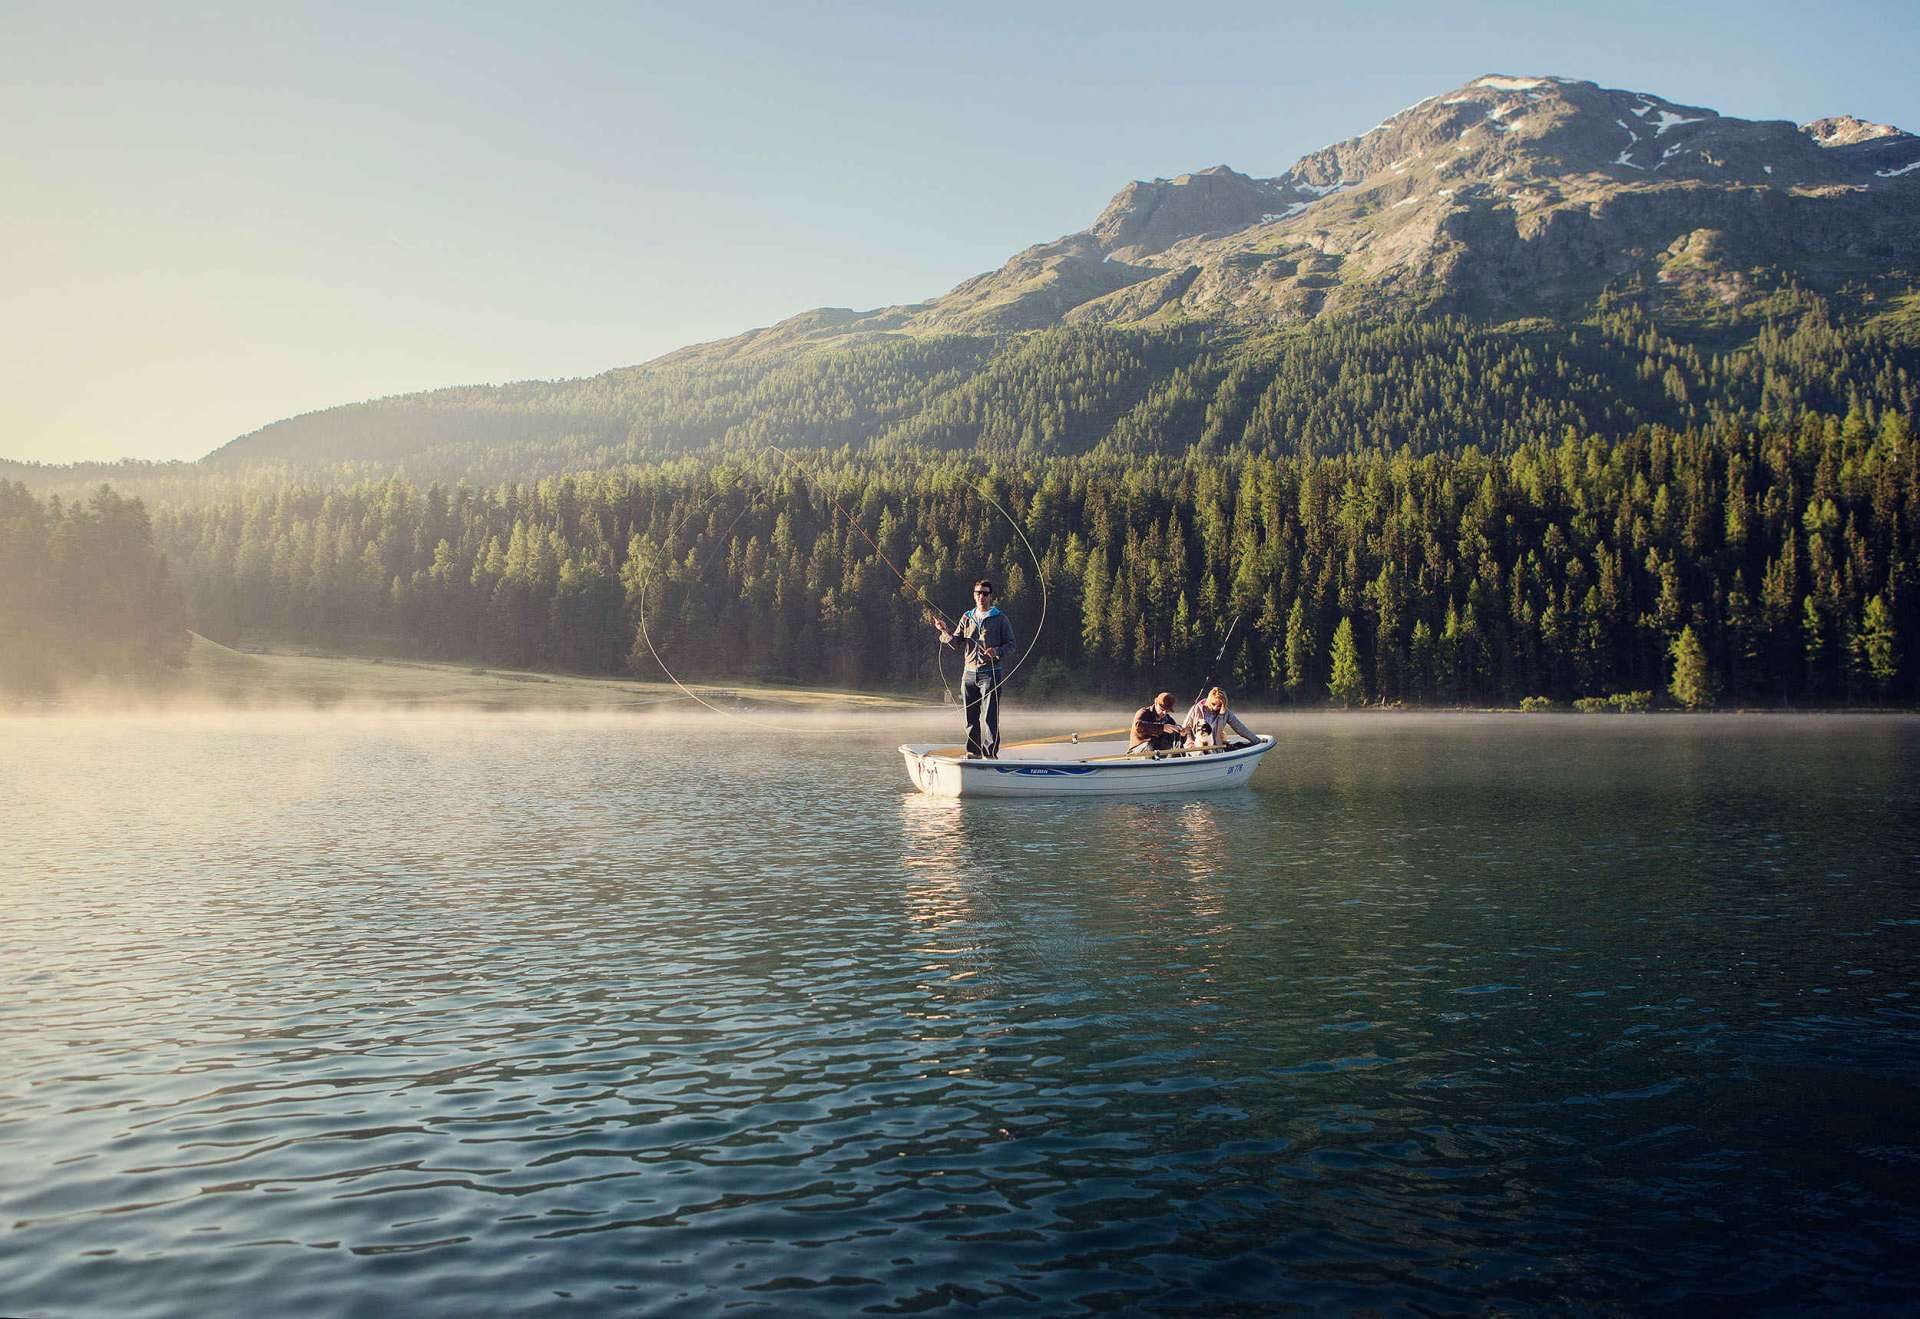 Fly fishing on a lake